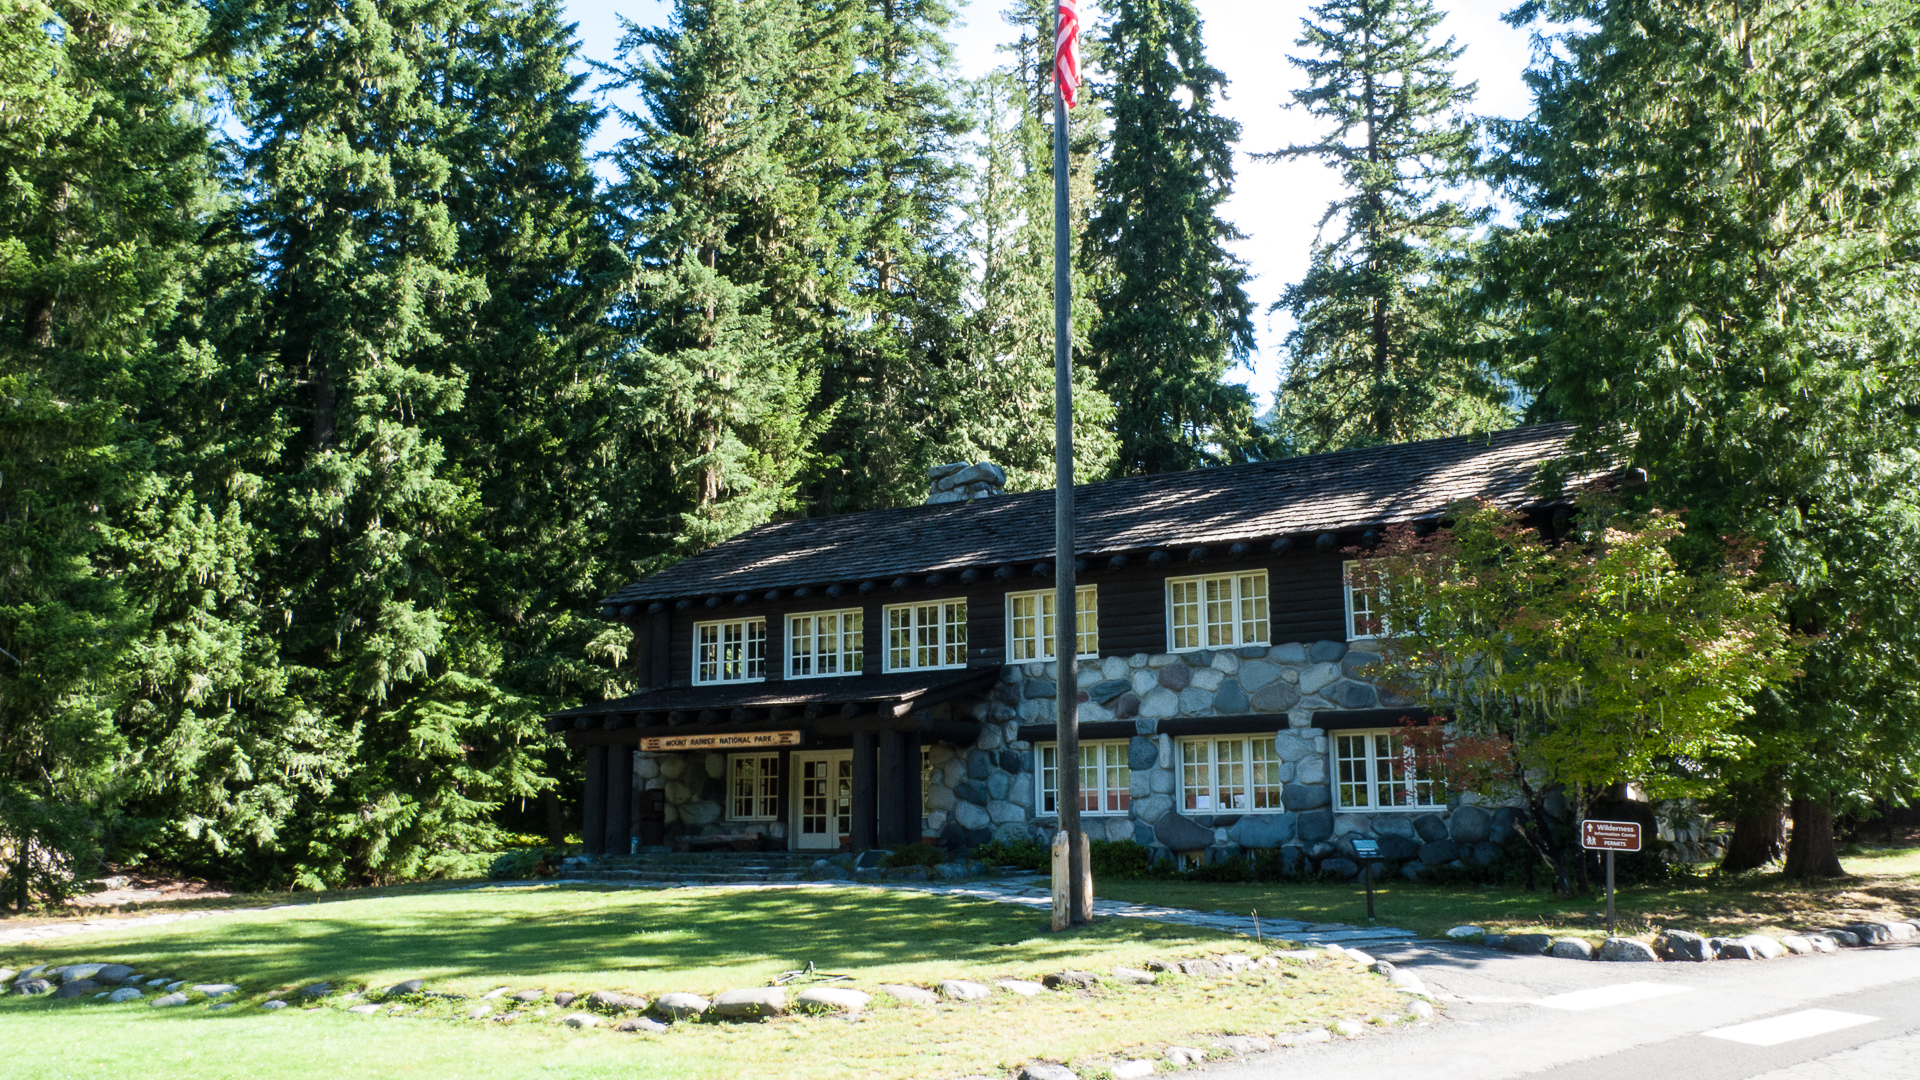 The Ranger Station at Longmire - one of the many historical sites in the park.